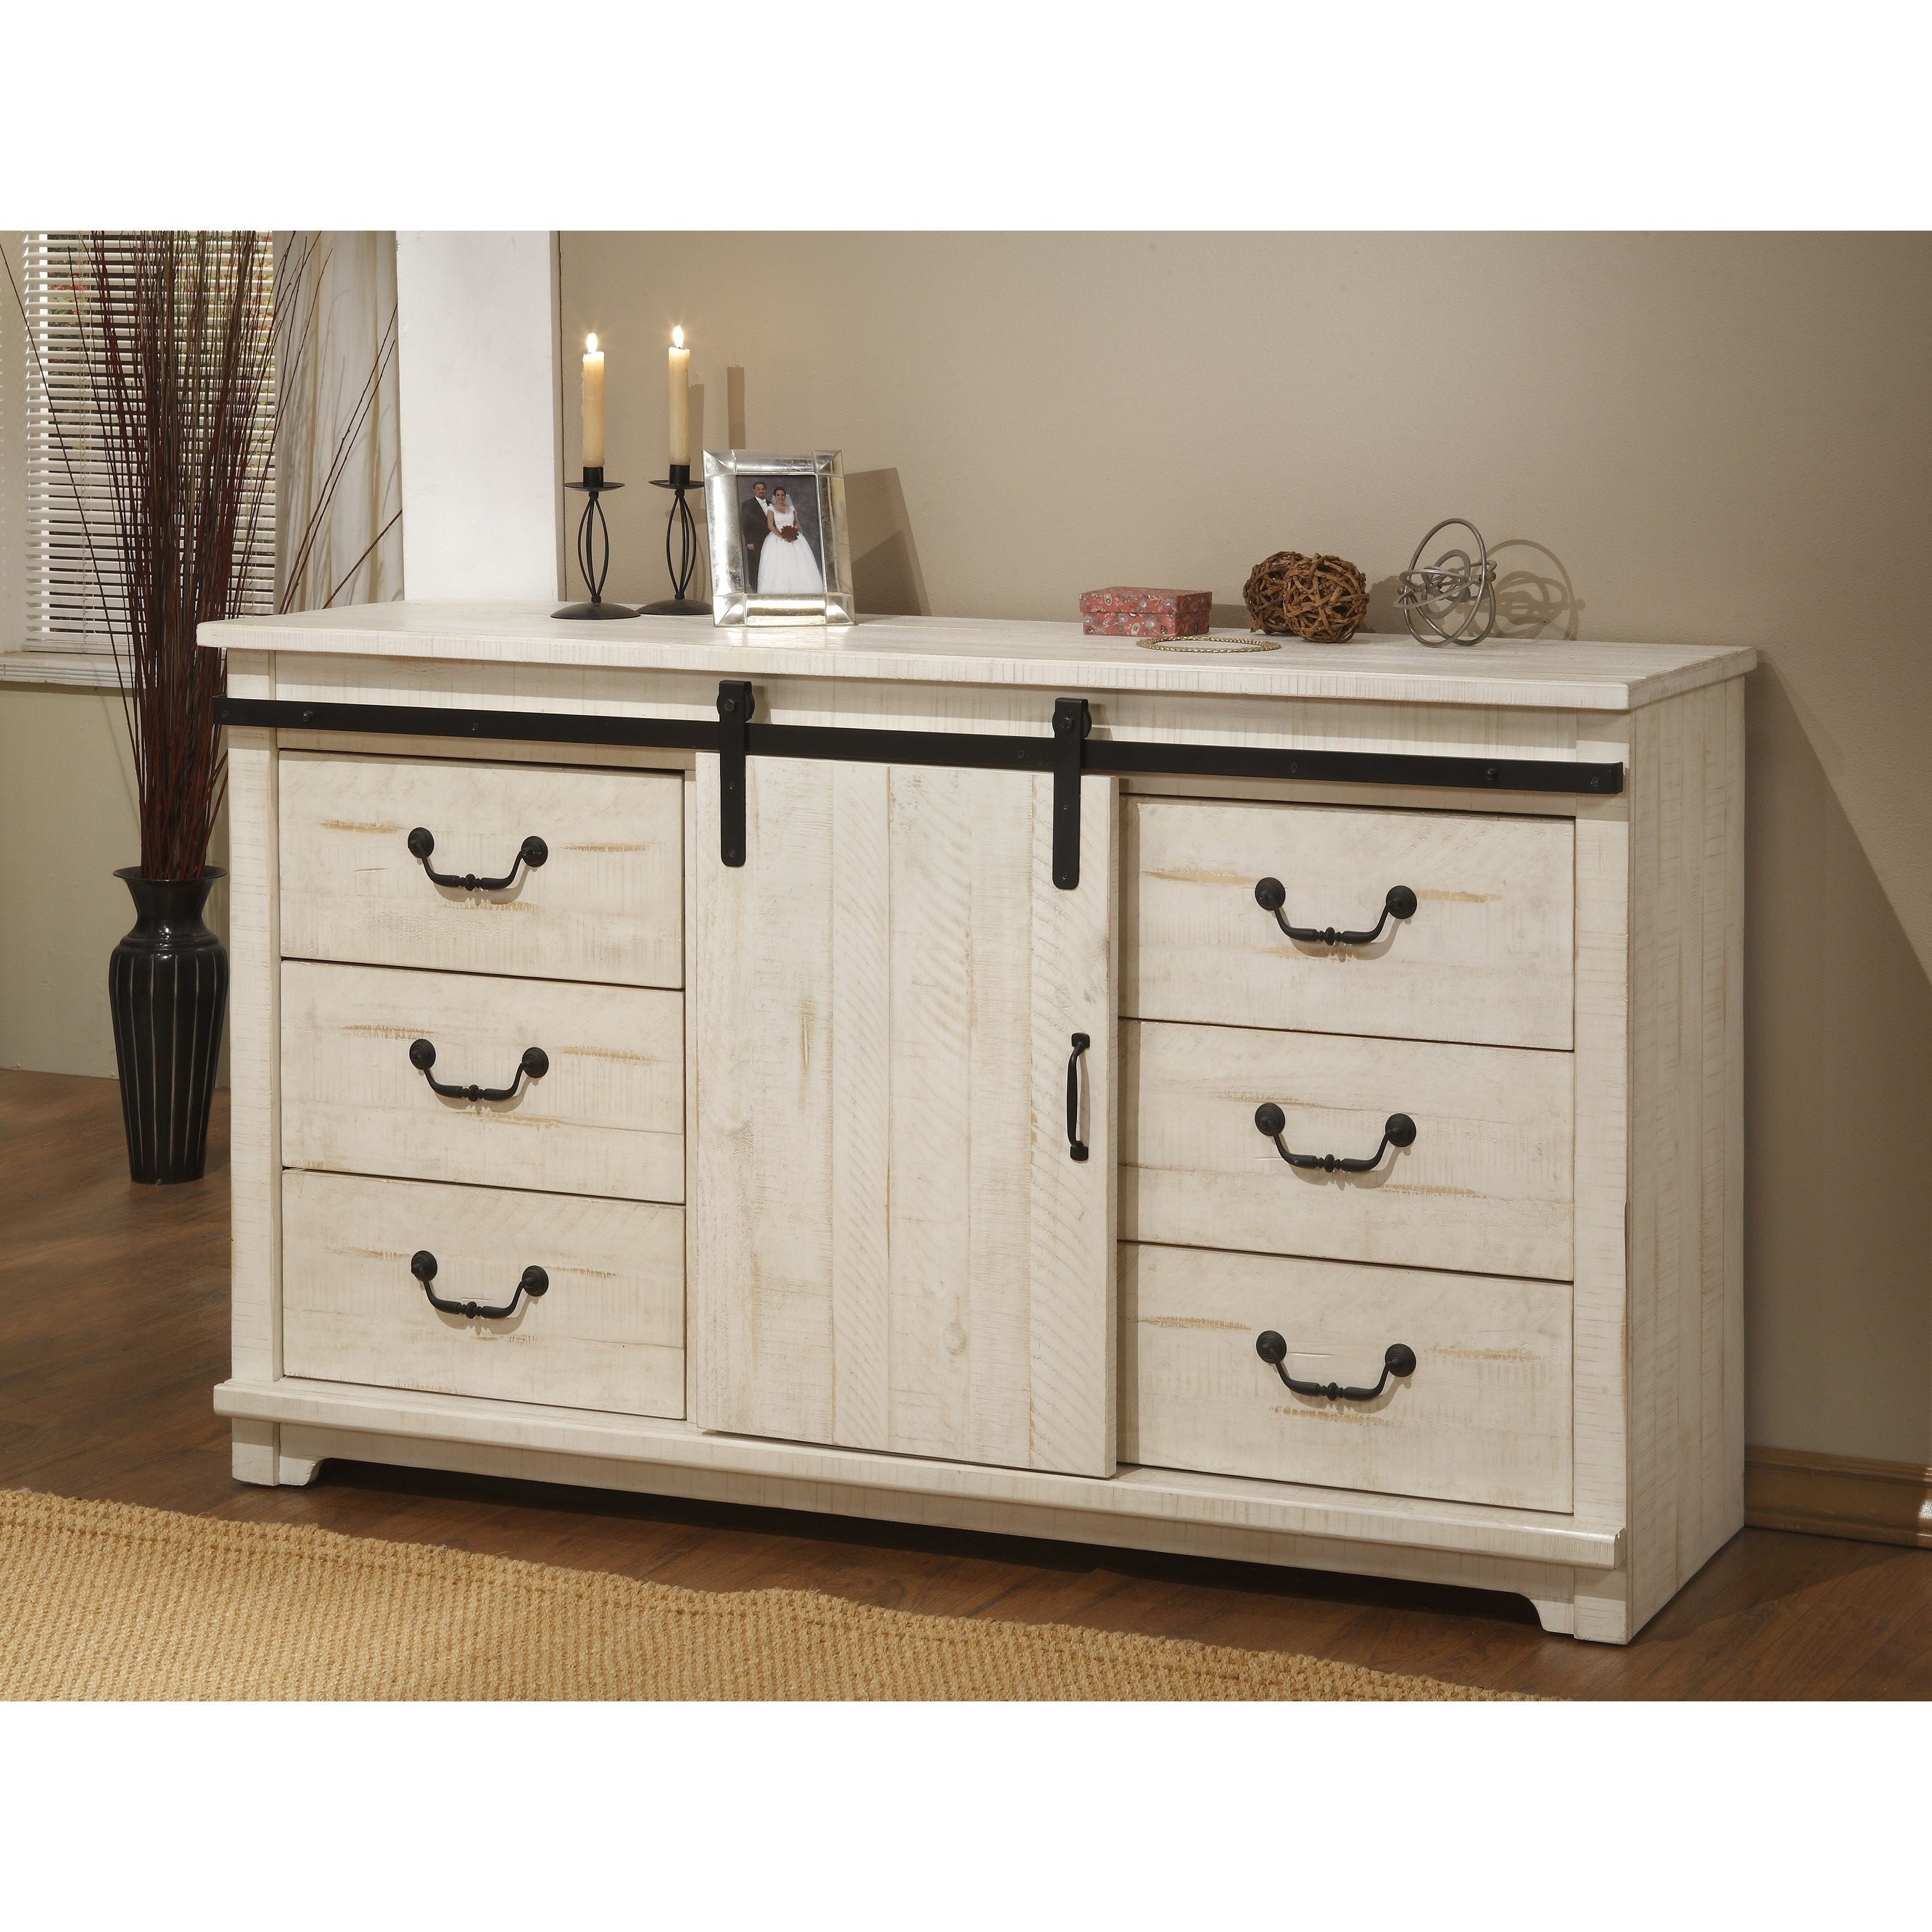 Coastal Farmhouse Solid Wood 9 Drawer Dresser With Sliding Barn Door,  Antique White